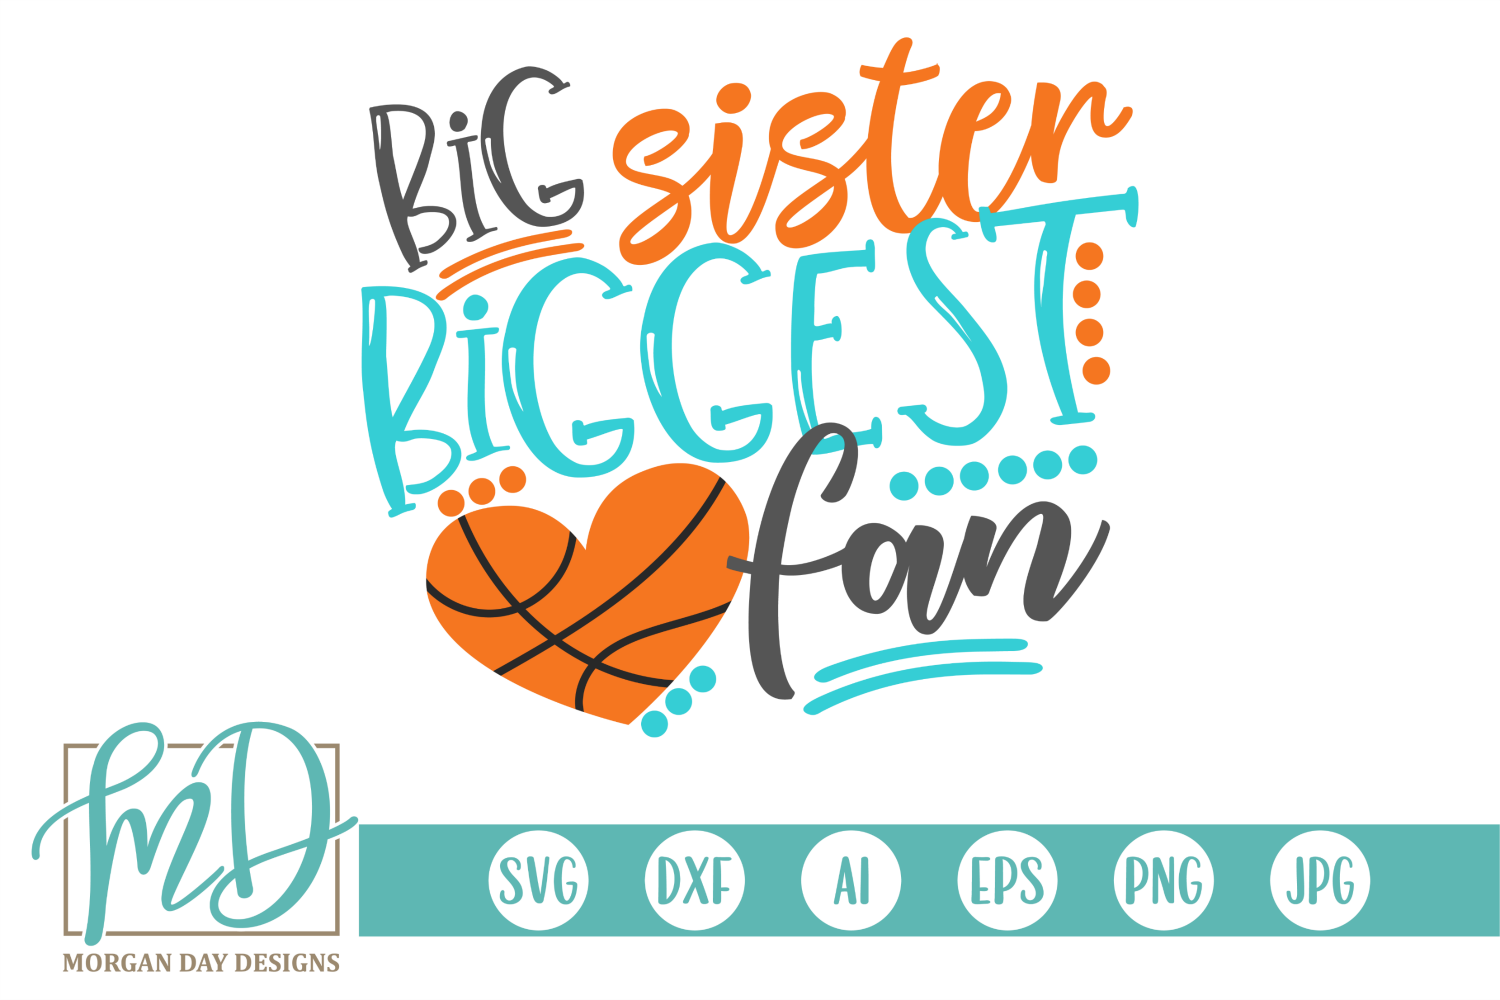 Download Free Big Sister Biggest Fan Basketball Graphic By Morgan Day Designs for Cricut Explore, Silhouette and other cutting machines.